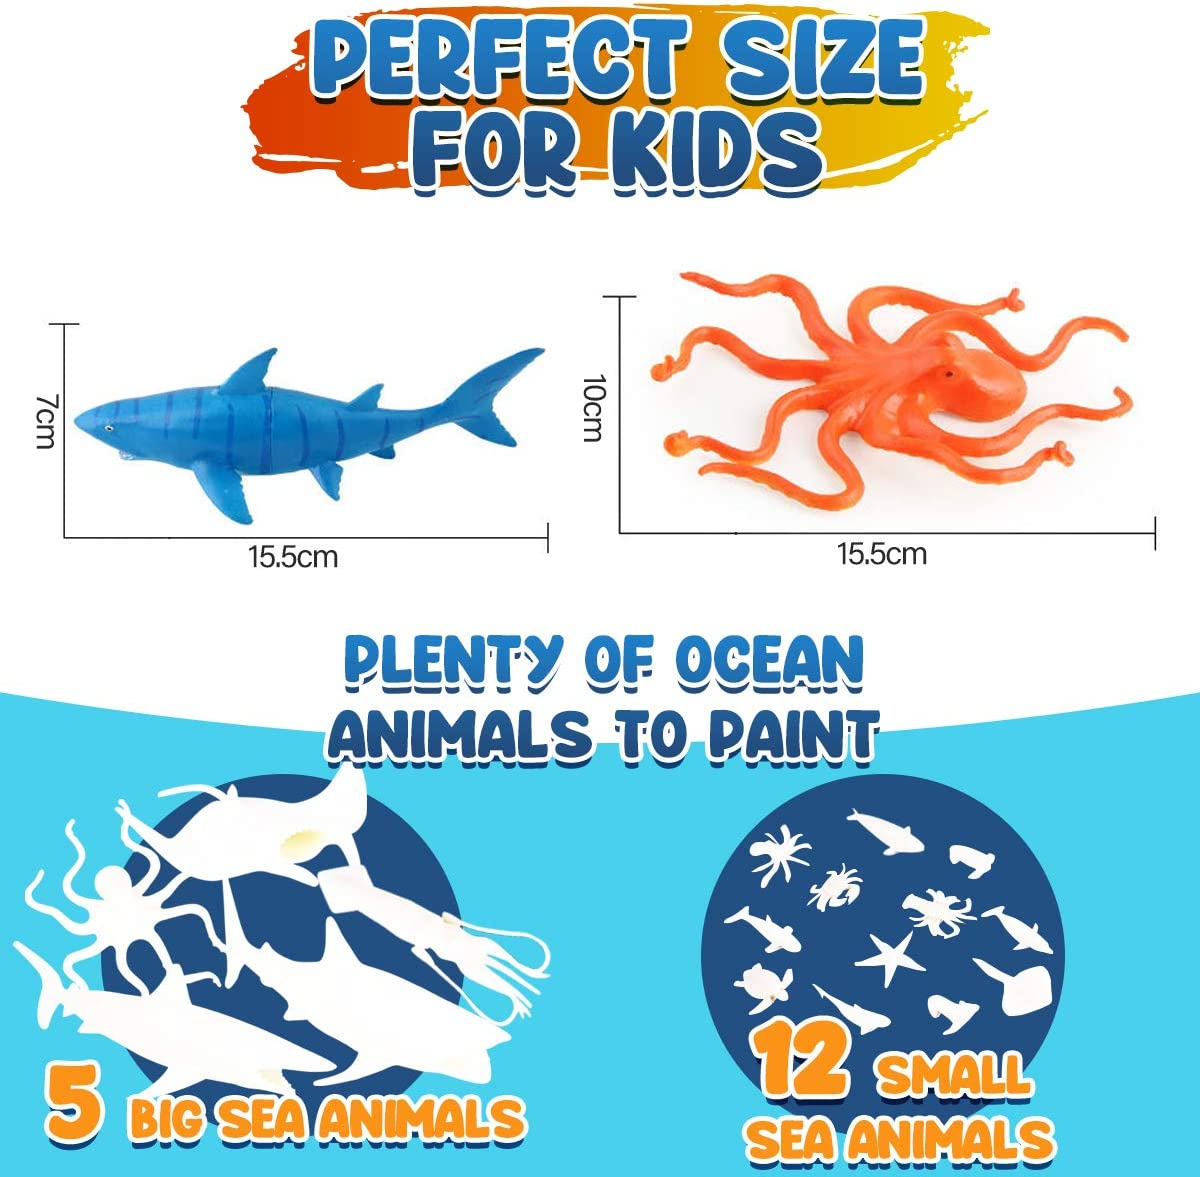 Ocean Sea Animal Toys Art and Craft Supplies Party Favors for Boys Girls Age 4 5 6 7 Years Old Kid Creativity DIY Gift Easter Paint Your Own Creatures FunzBo Kids Crafts and Arts Set Painting Kit